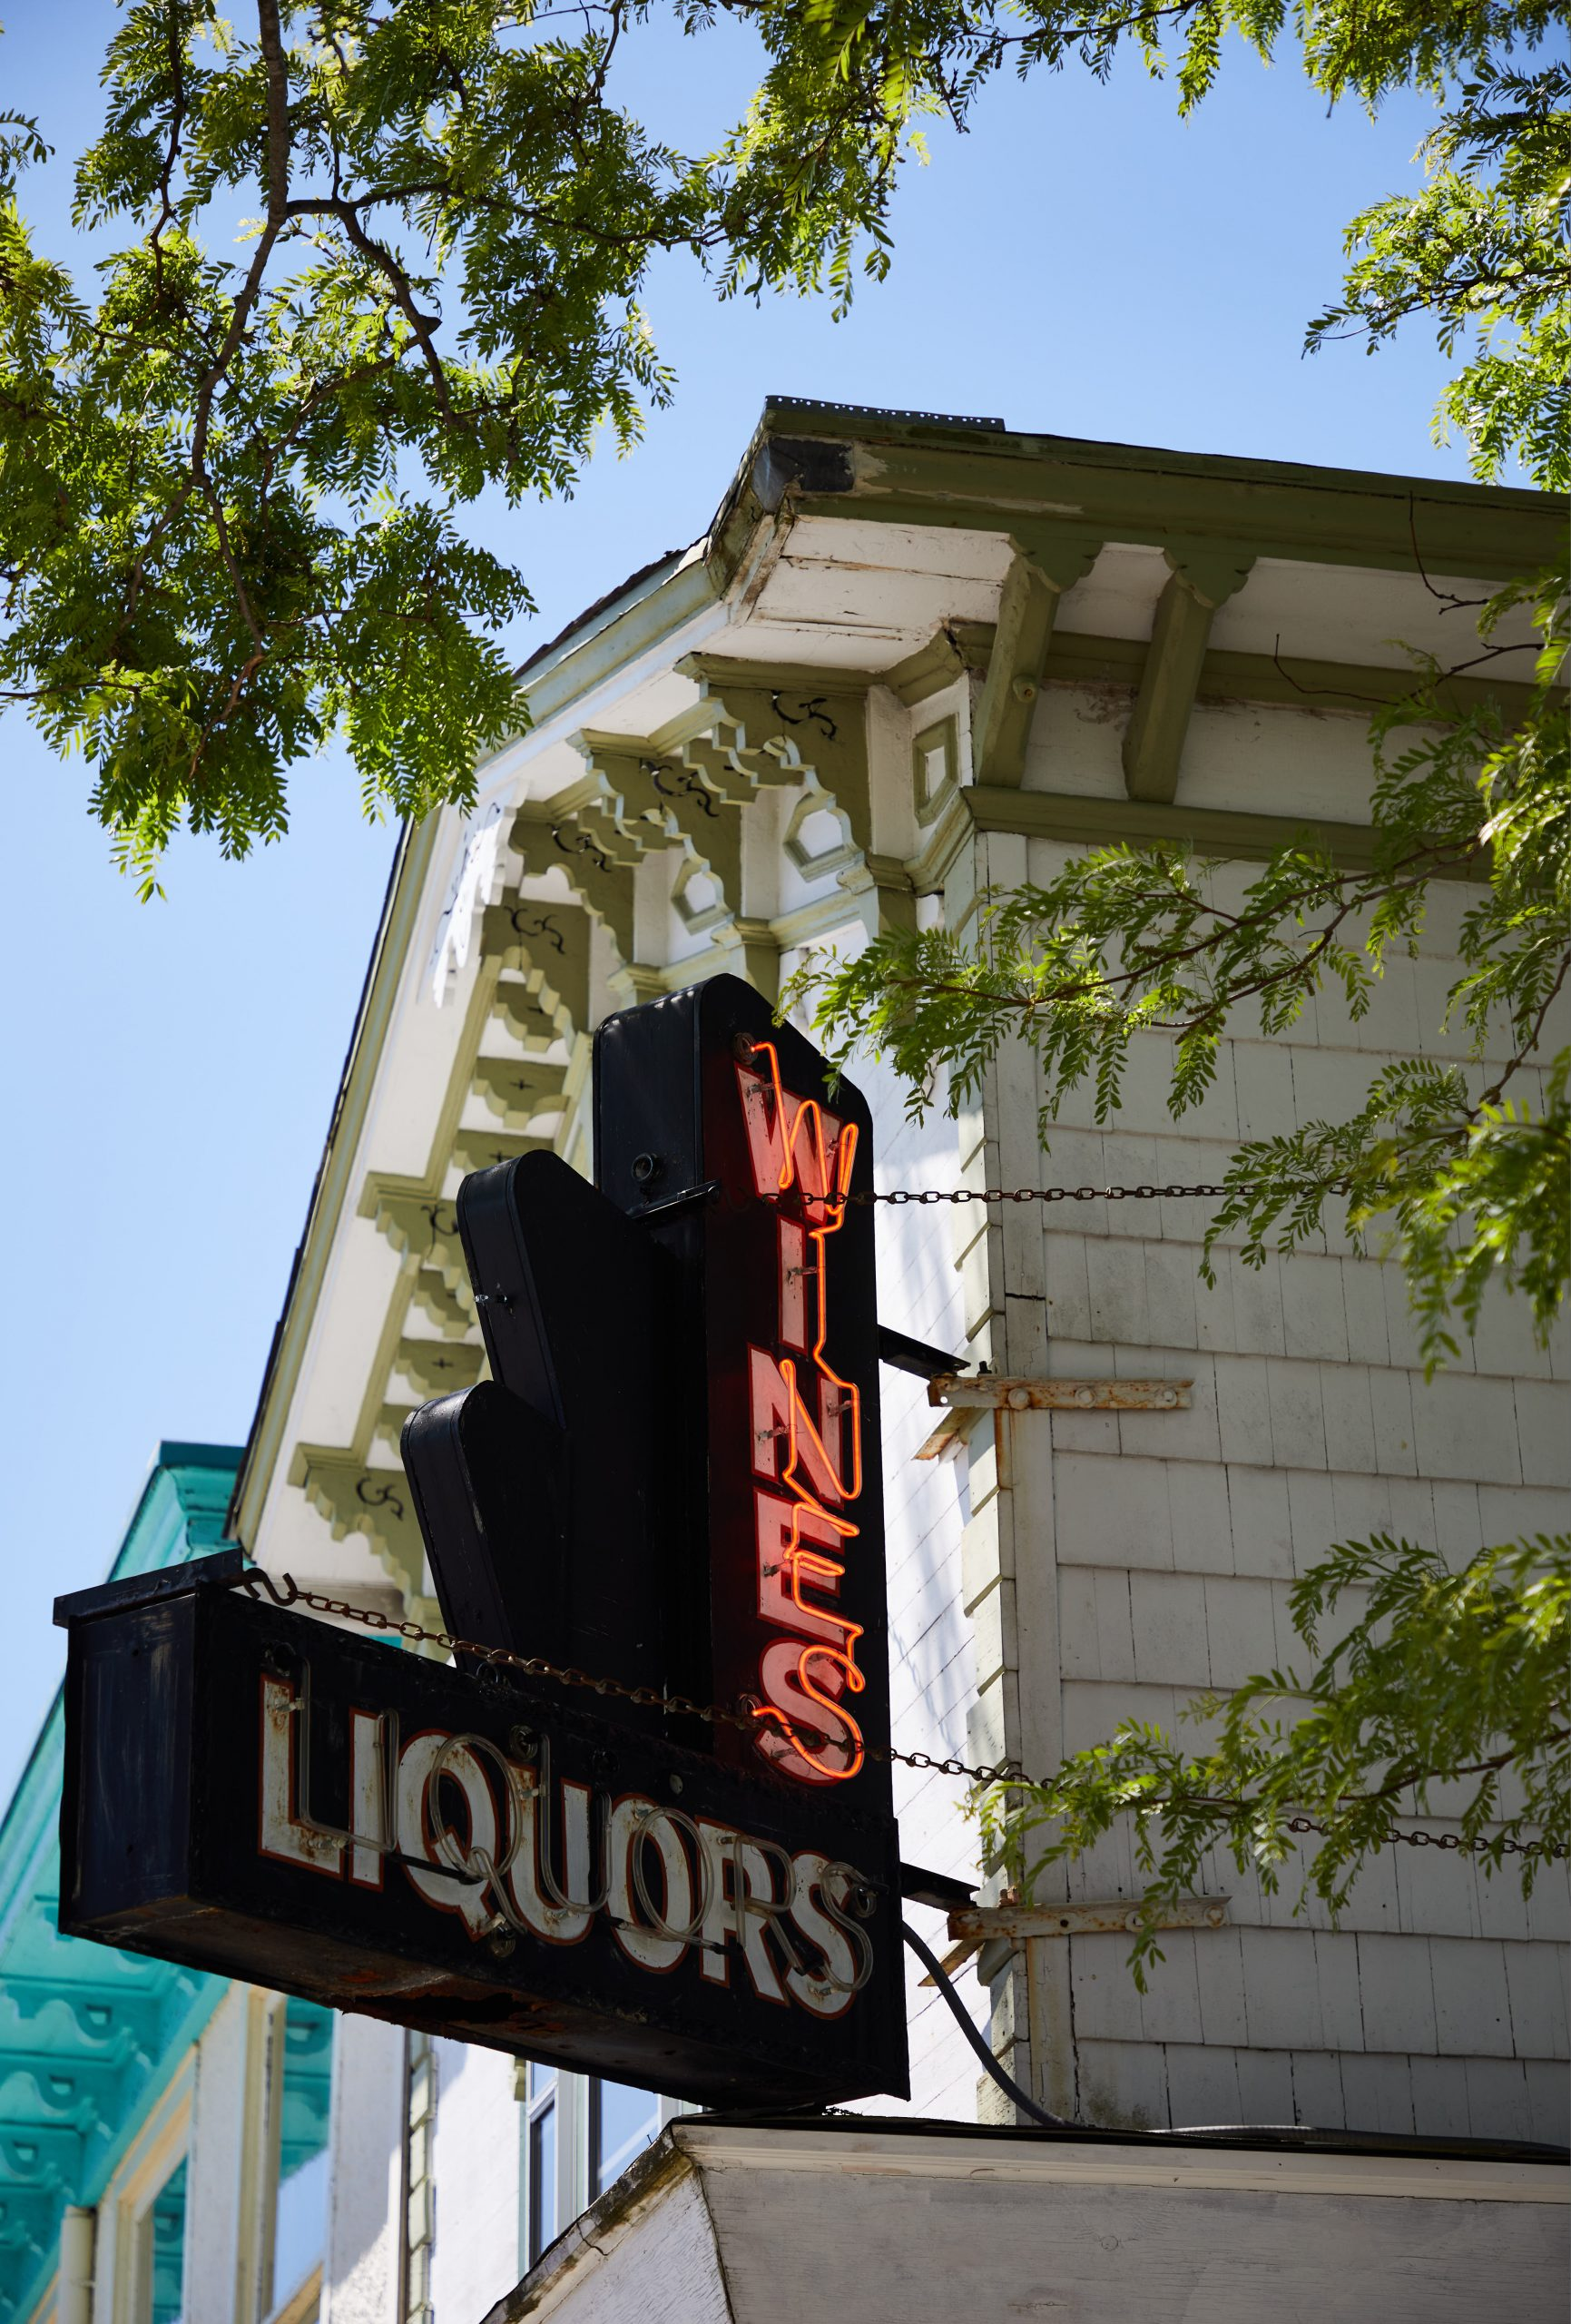 Wines Liquors building sign